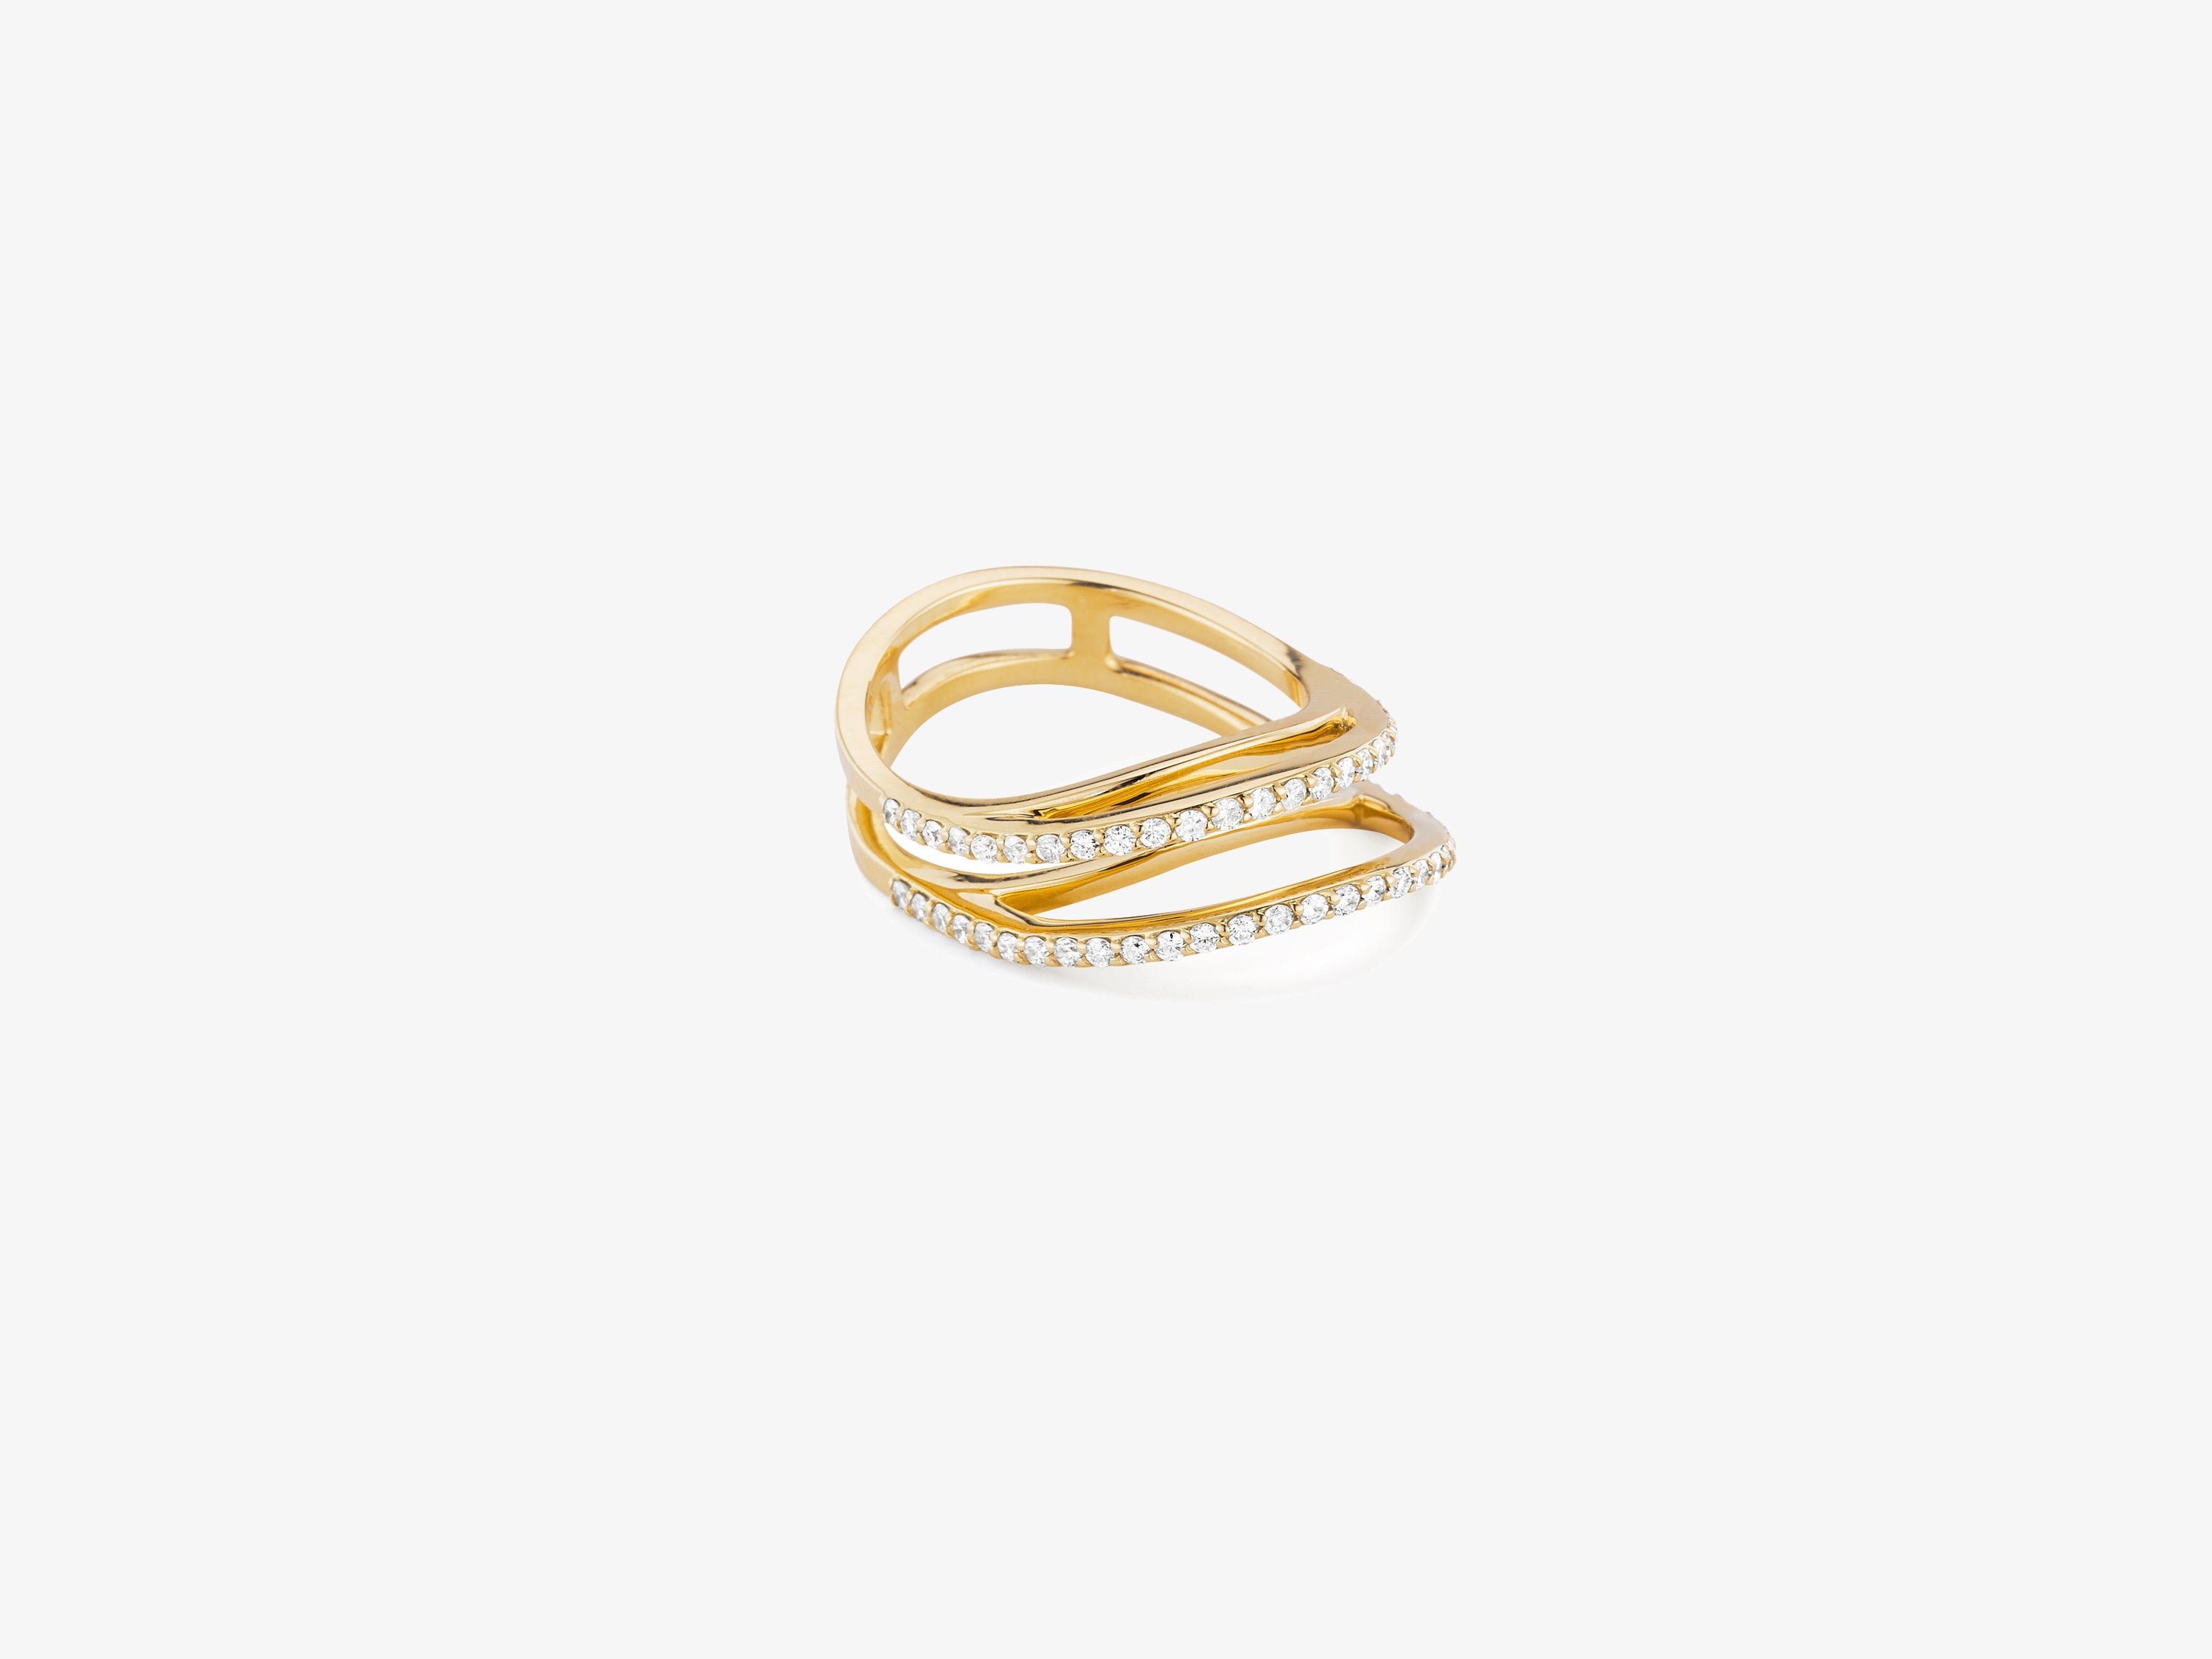 Three Dimensional Wavy Ring with Full Diamond Pave